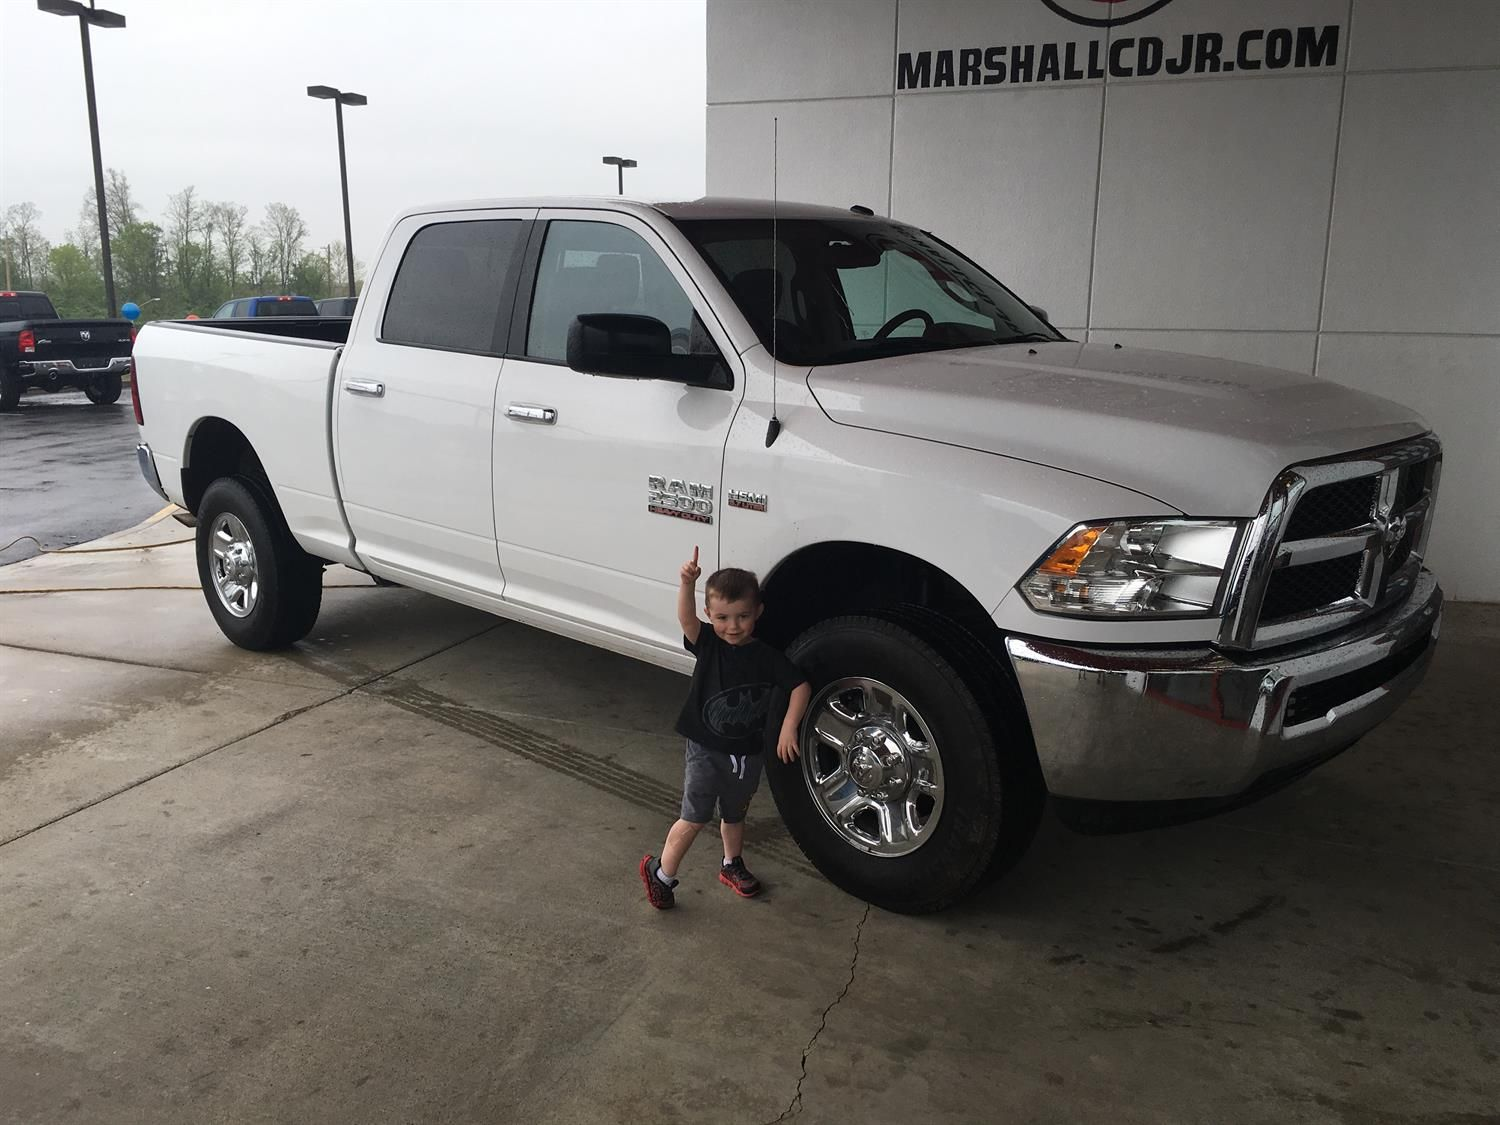 MULLINS's new 2015 Ram 2500! Congratulations and best wishes from Marshall Chrysler Dodge Jeep Ram and ARRON ARRASMITH.